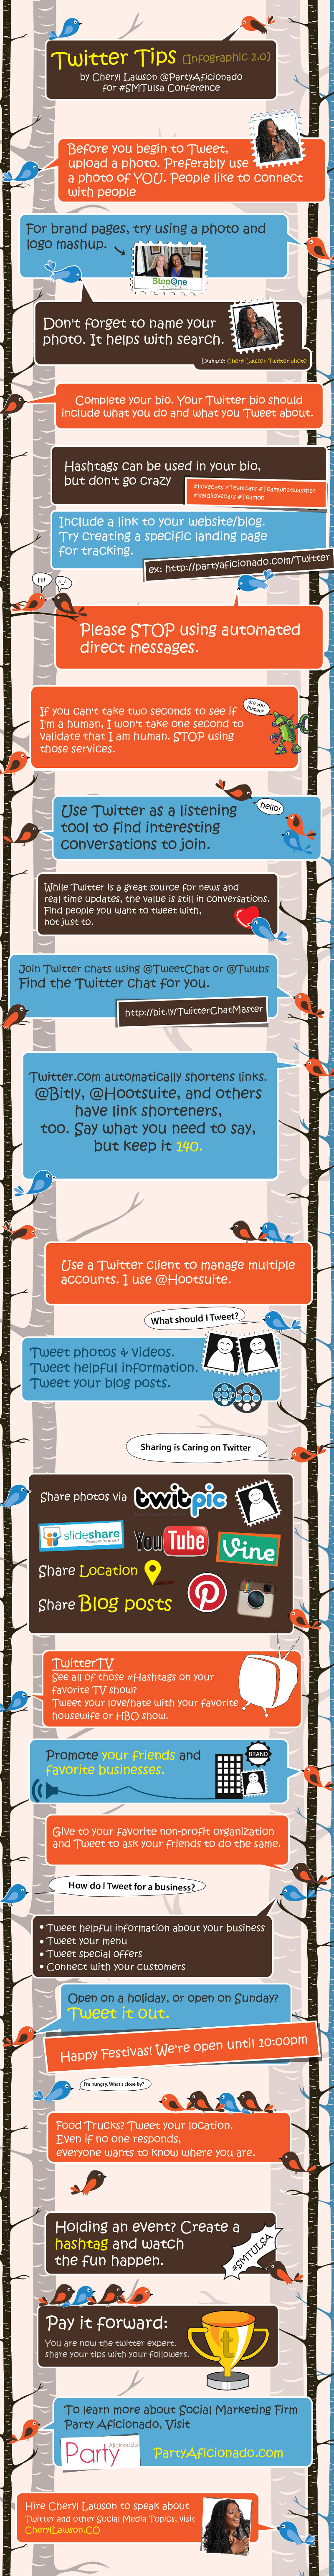 Cool Twitter Tricks1 27 Cool Twitter Tricks for 2013